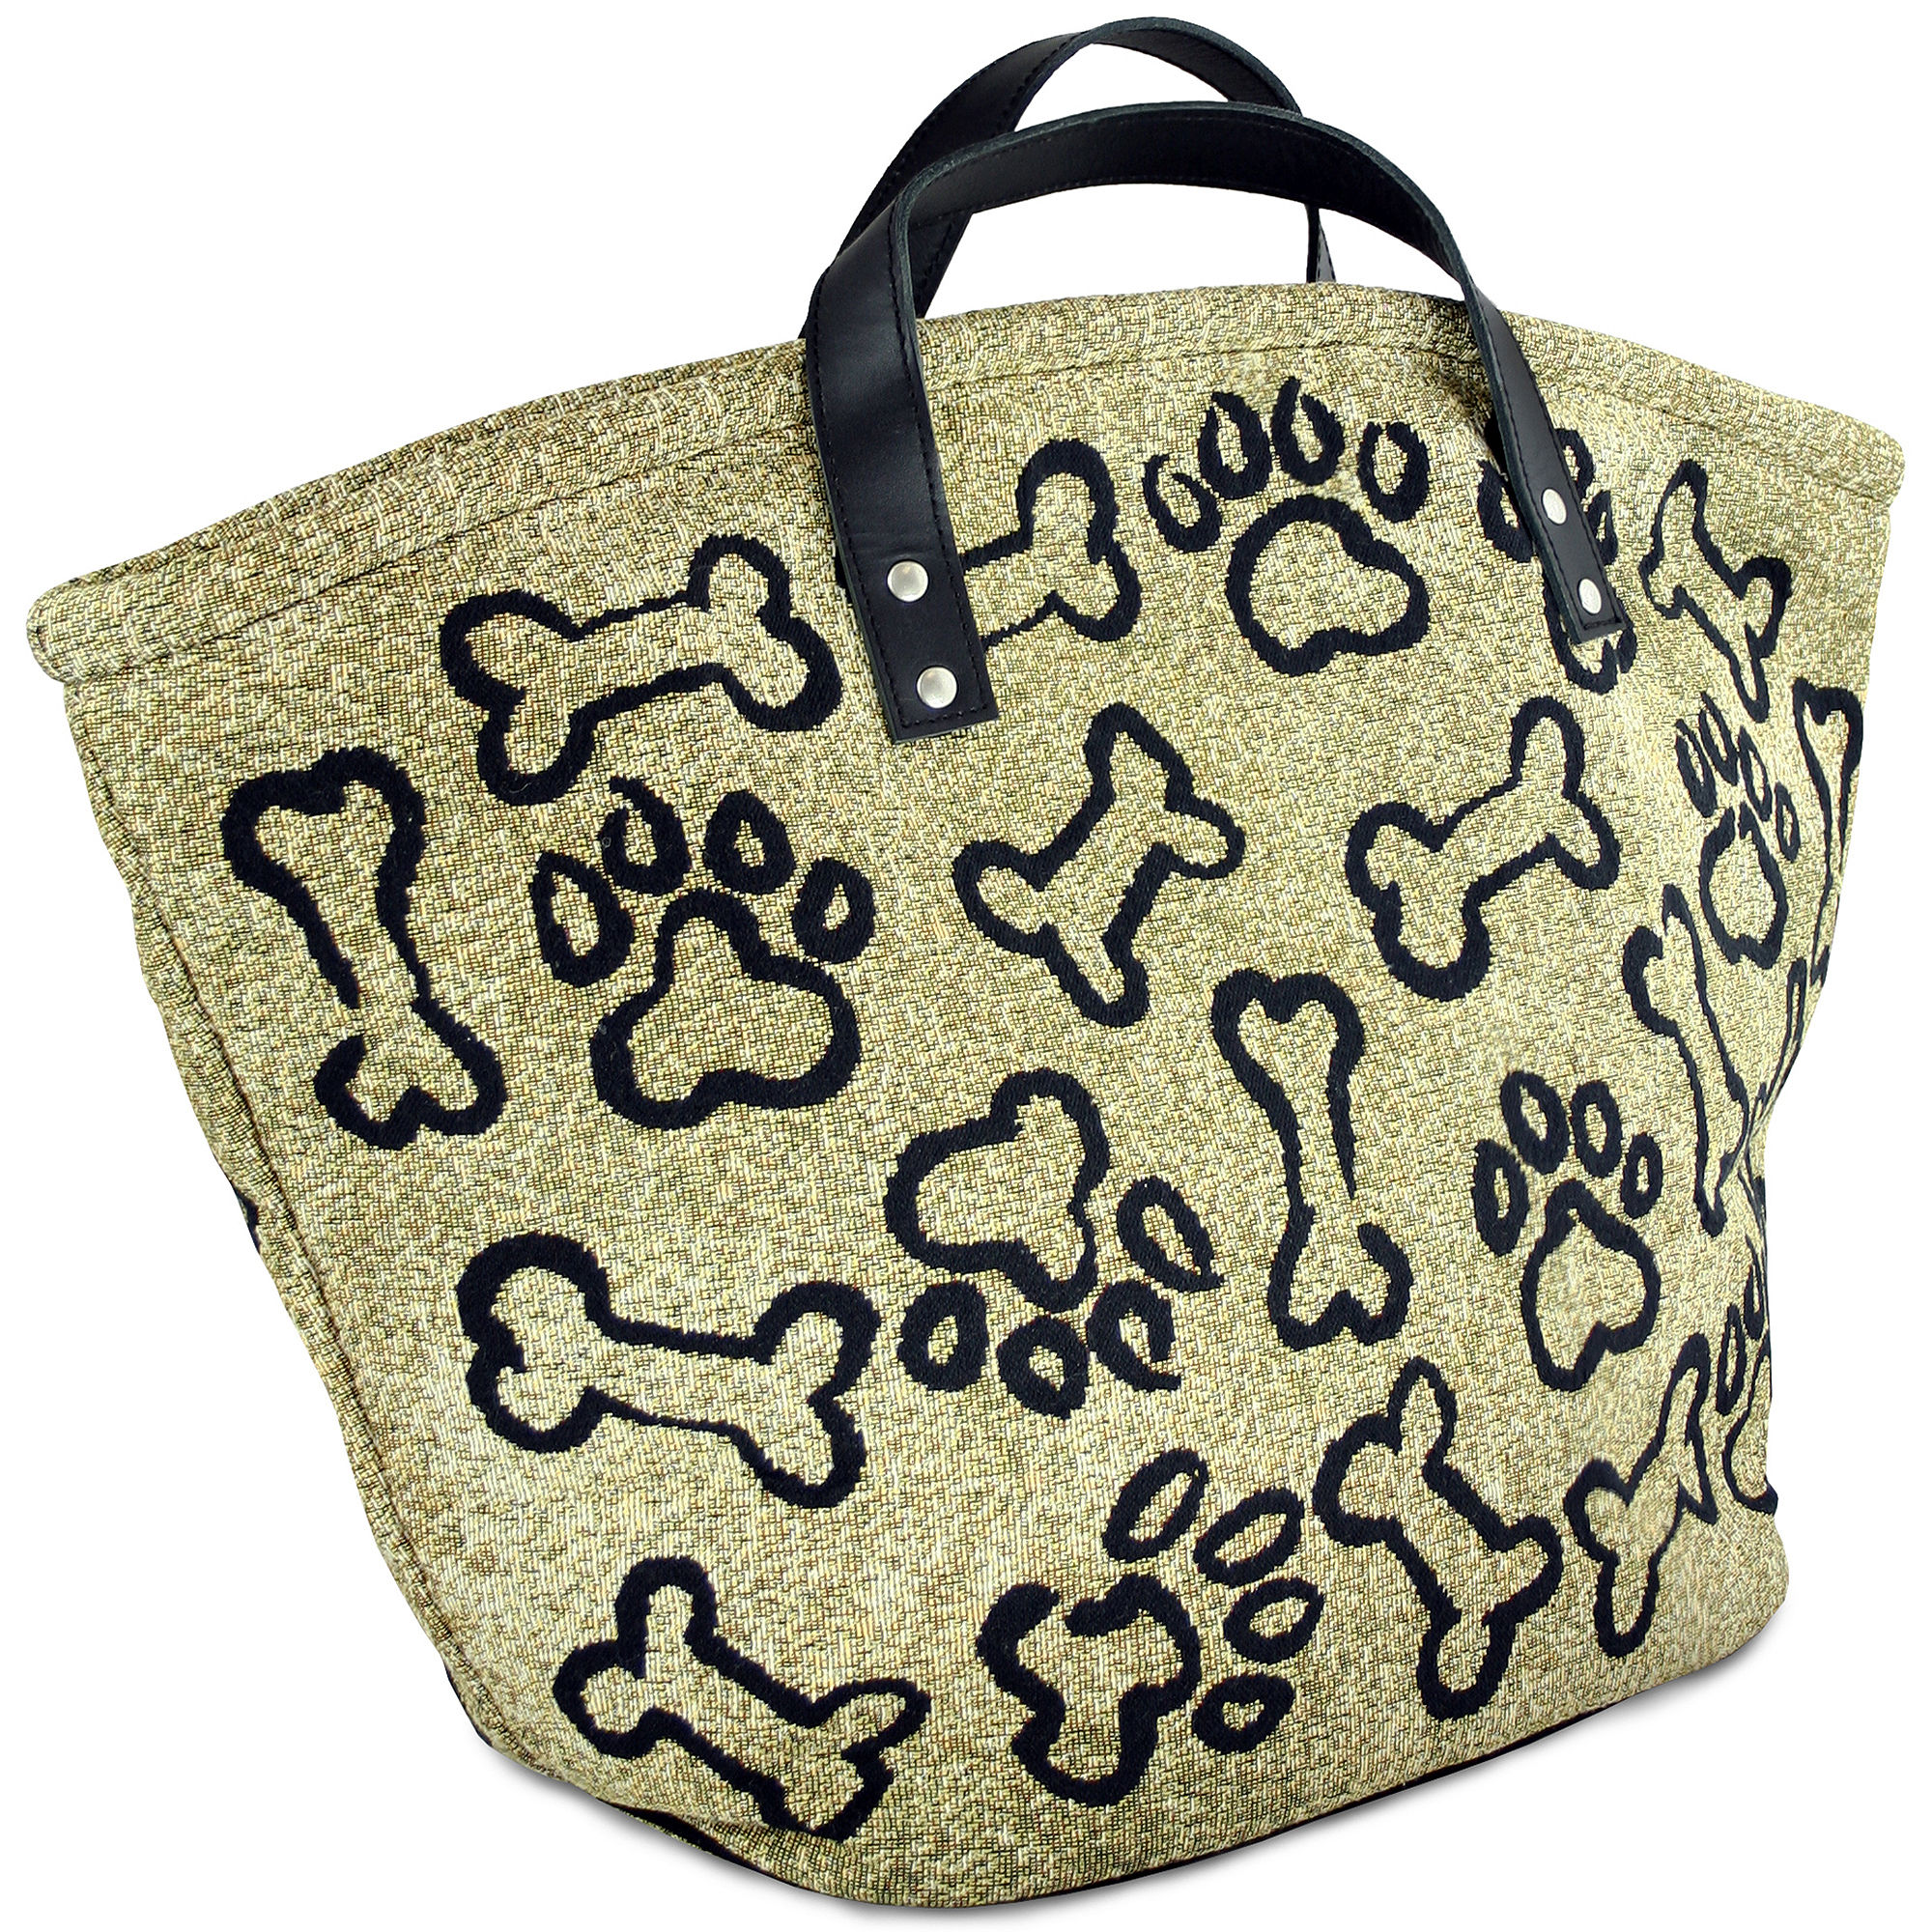 PB Paws by Park B. Smith Puppy Paws Pet Toy Bag - Large